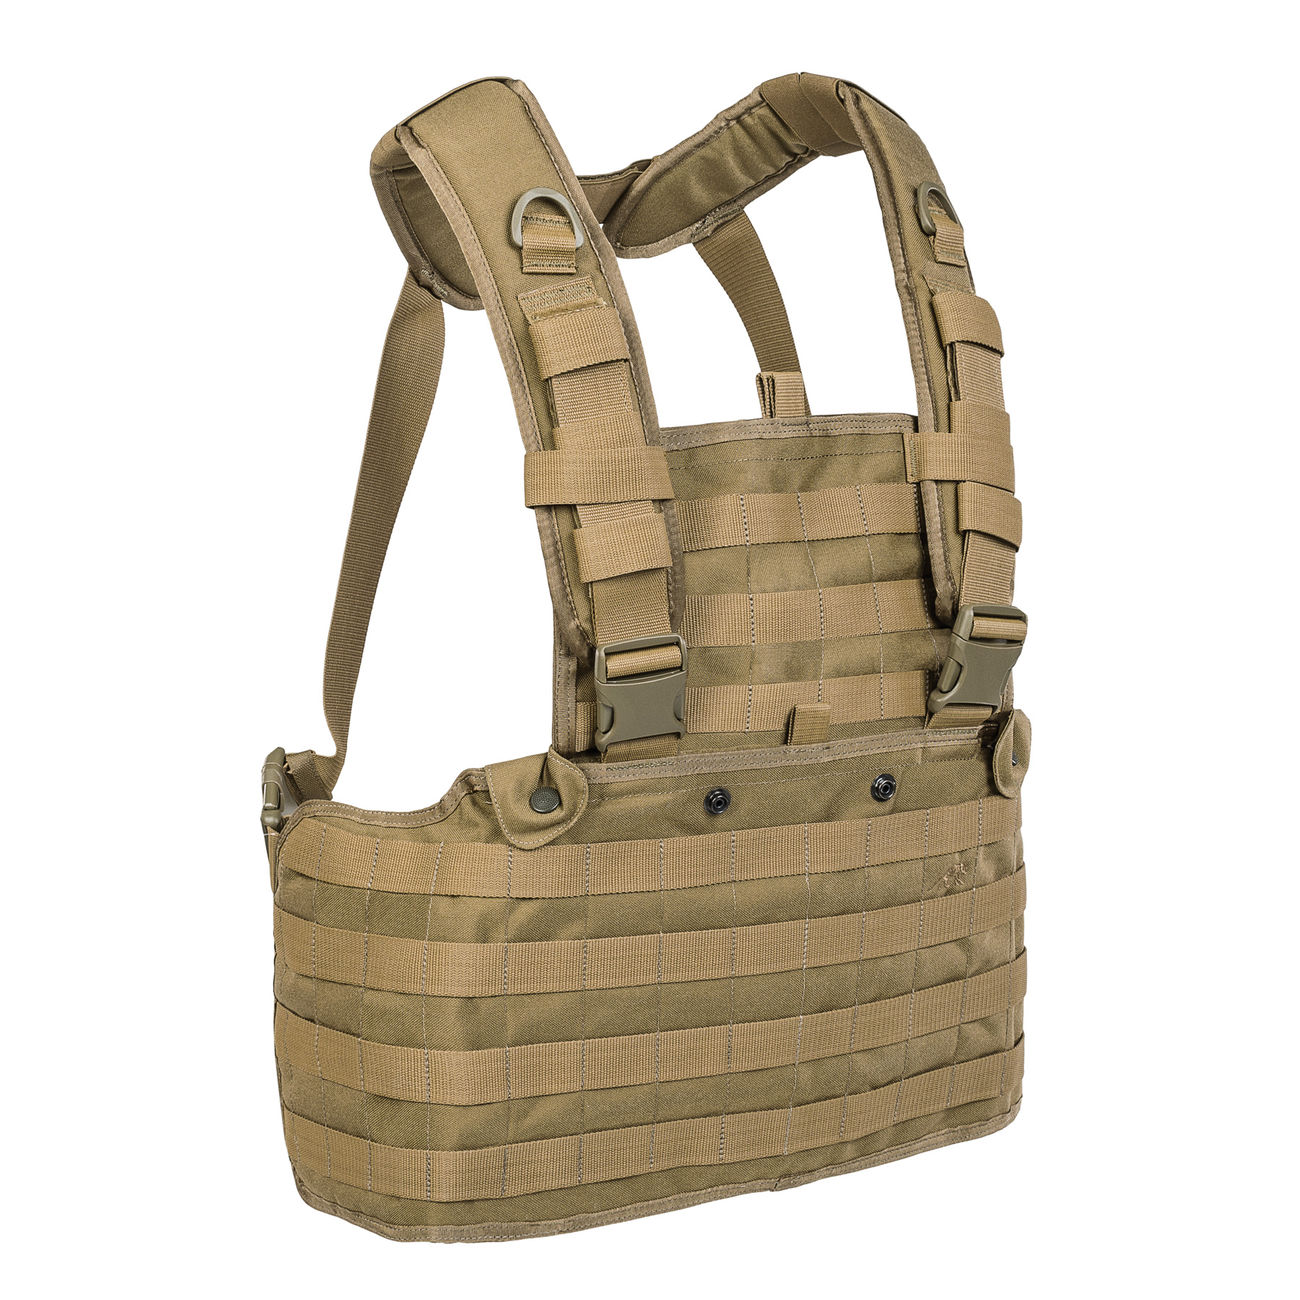 TT Chest Rig Modular coyote brown 0